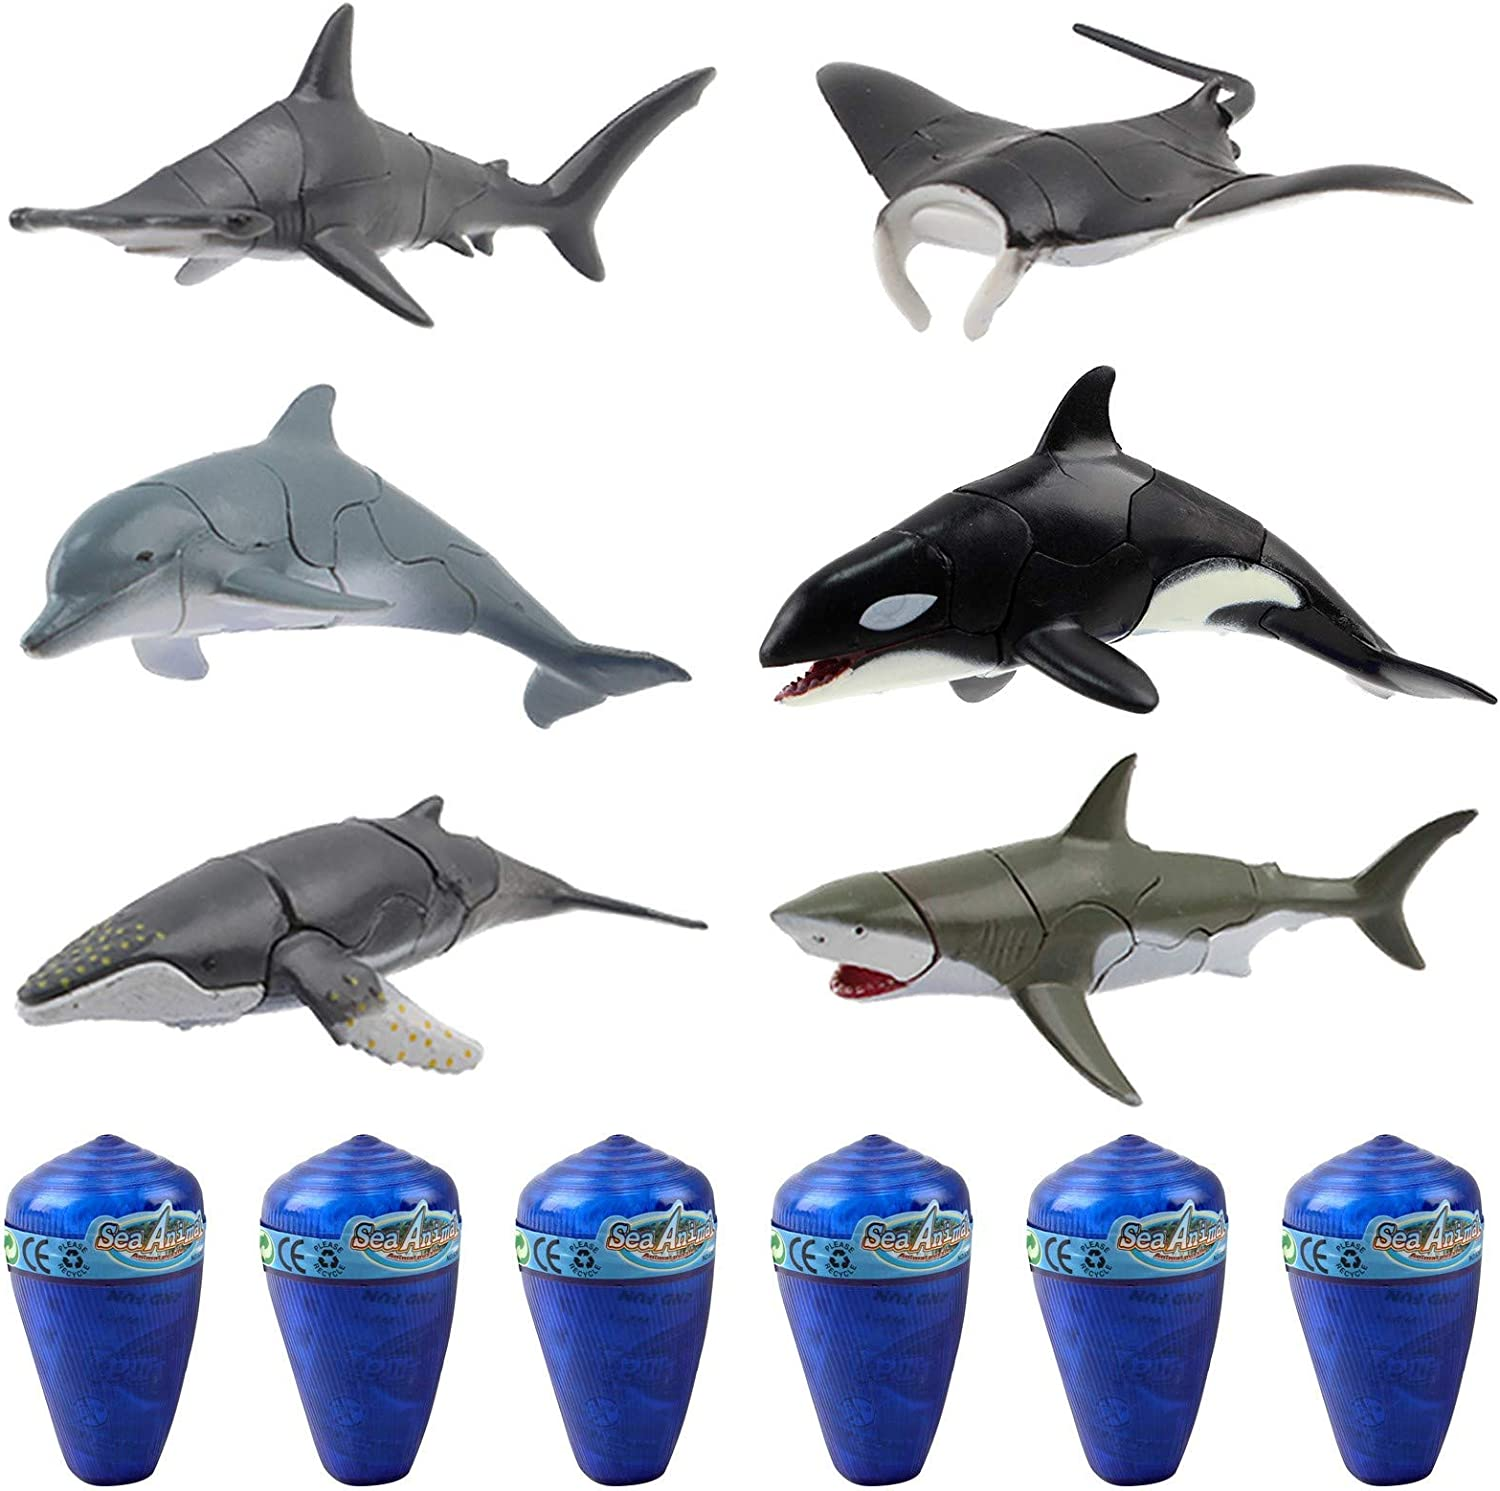 Vokodo Marine Animal Building Set With 6 Unique Species In Seashells Kids 3D Puzzle Aquatic Life Take Apart Ocean Discover Science STEM Sea Education Dig Up Easter Party Toys Great Gift For Boys Girls